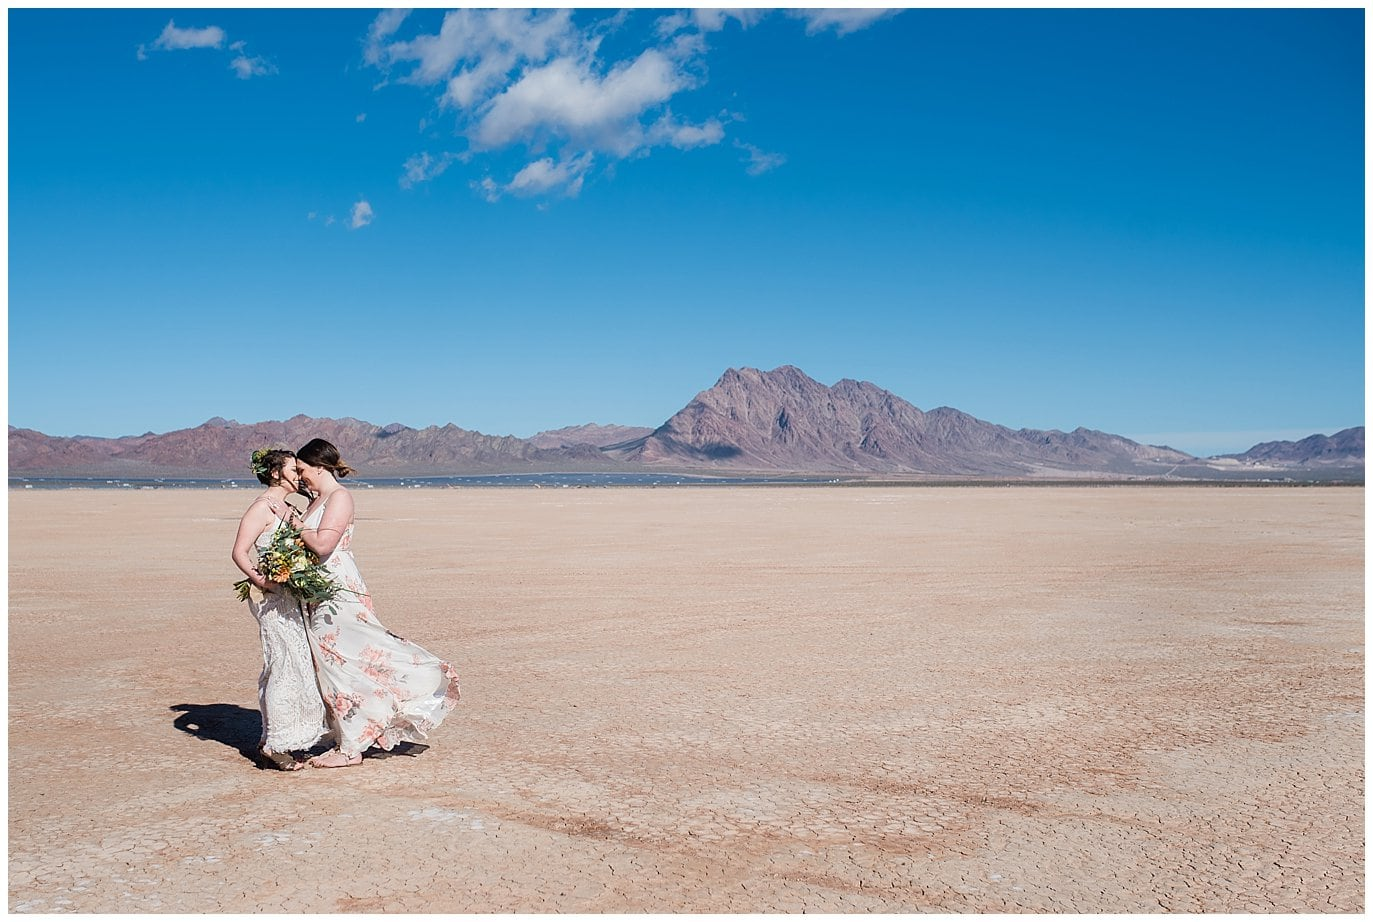 Nevada Dry Lake Bed Elopement photo